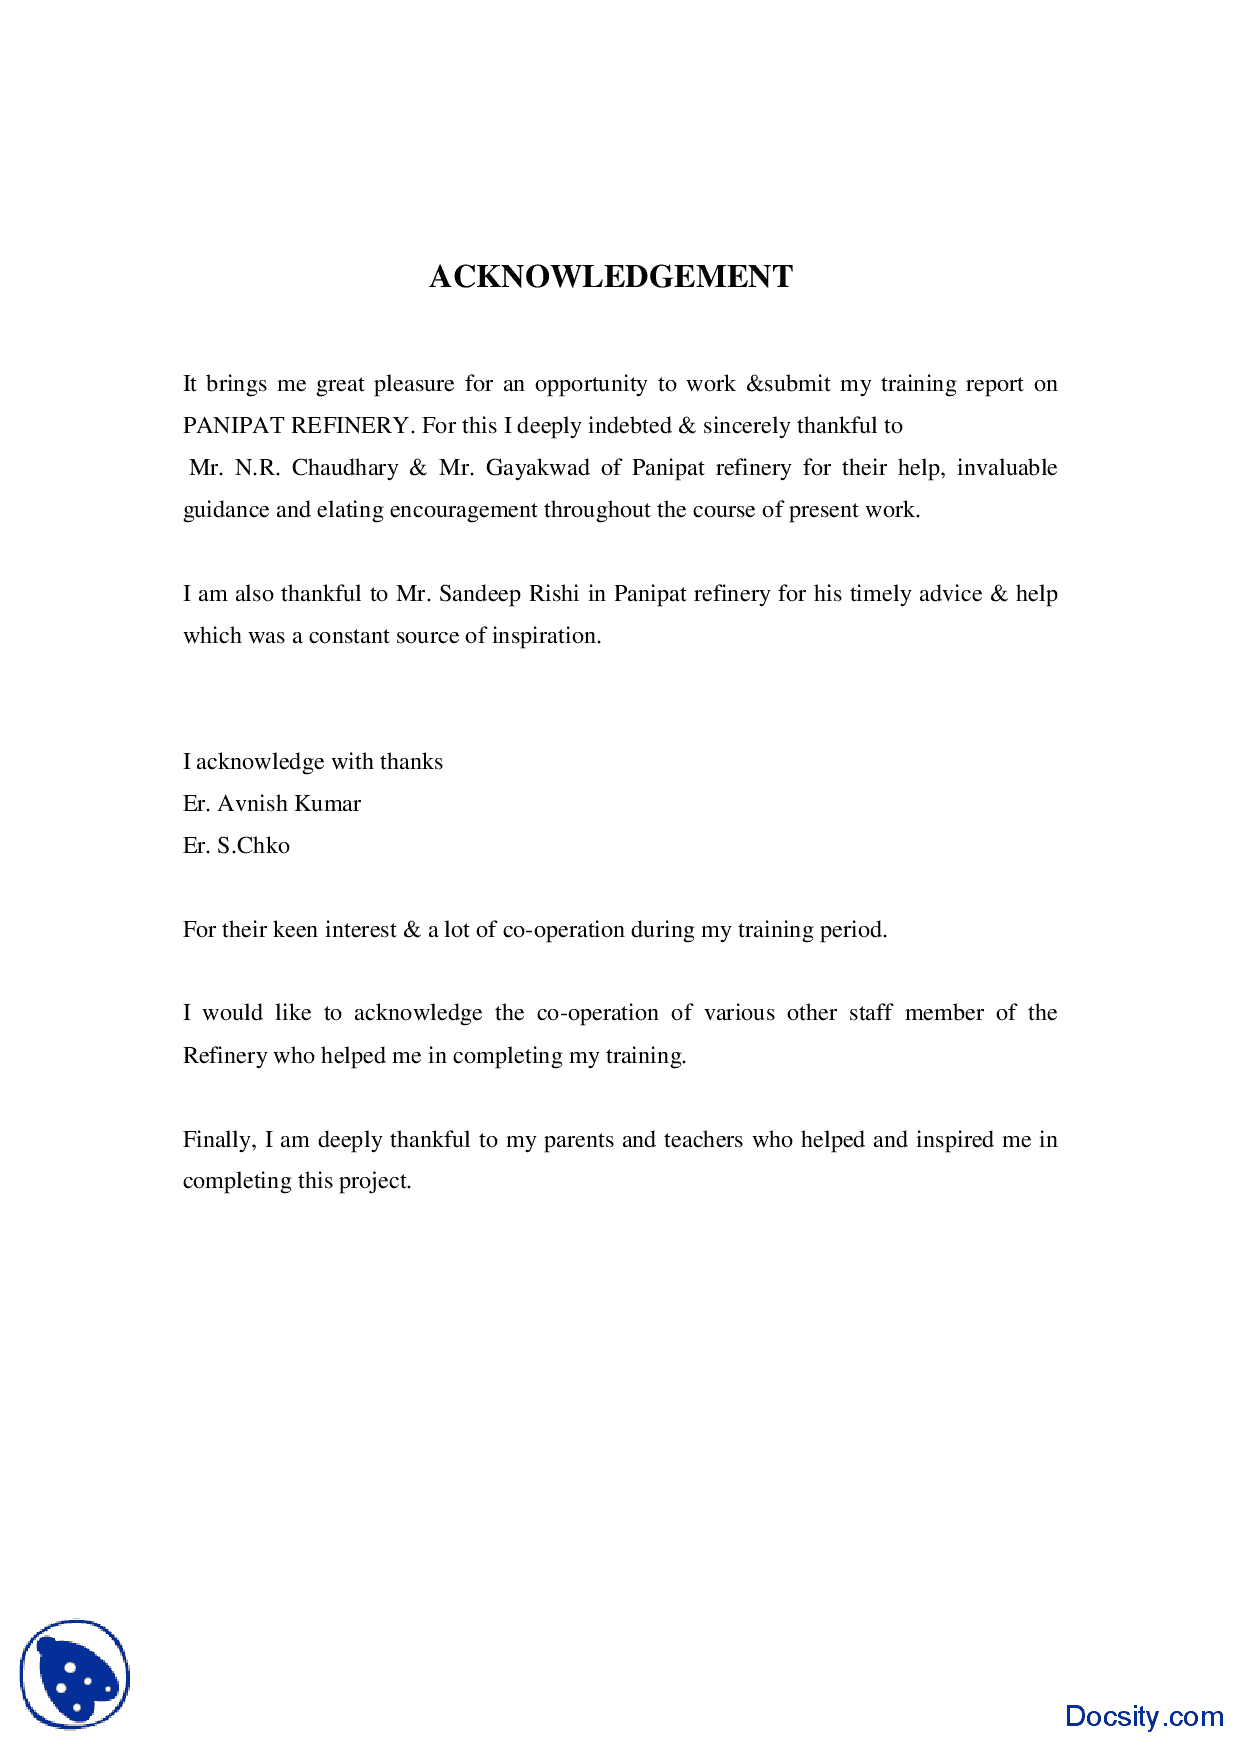 Writing Acknowledgements Dissertation Acknowledgements 9 An